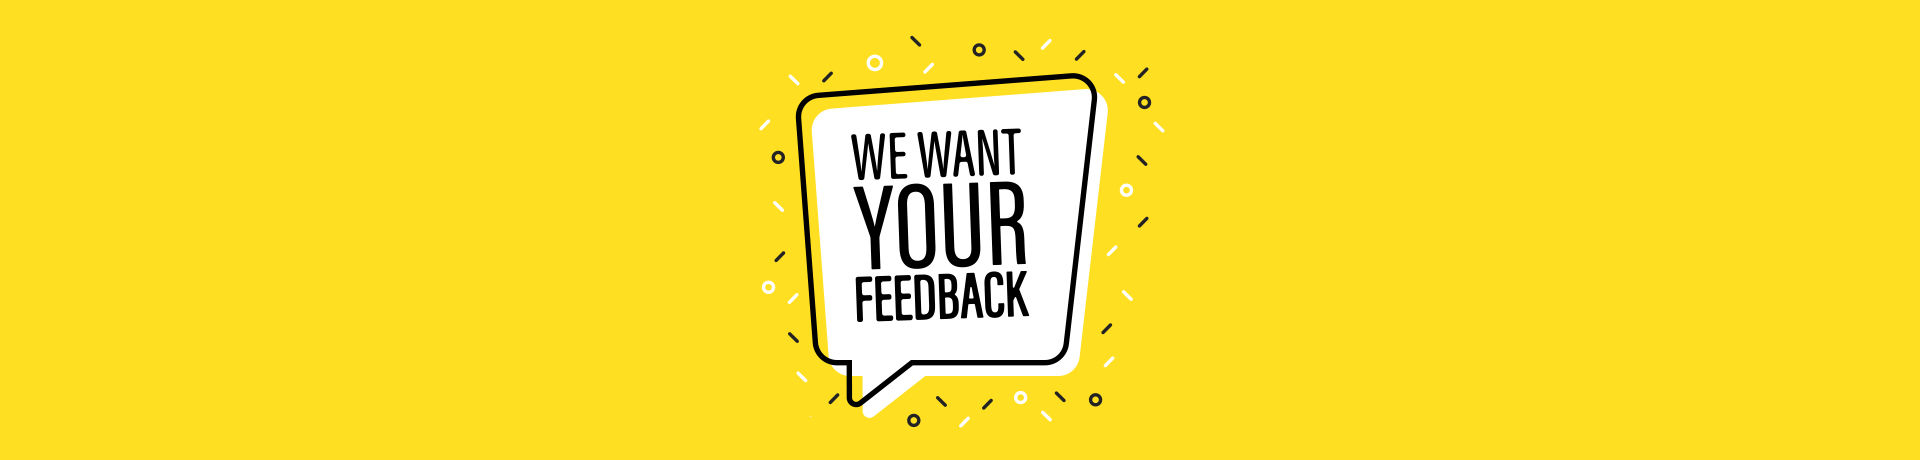 Have you transacted with us? We want your feedback!